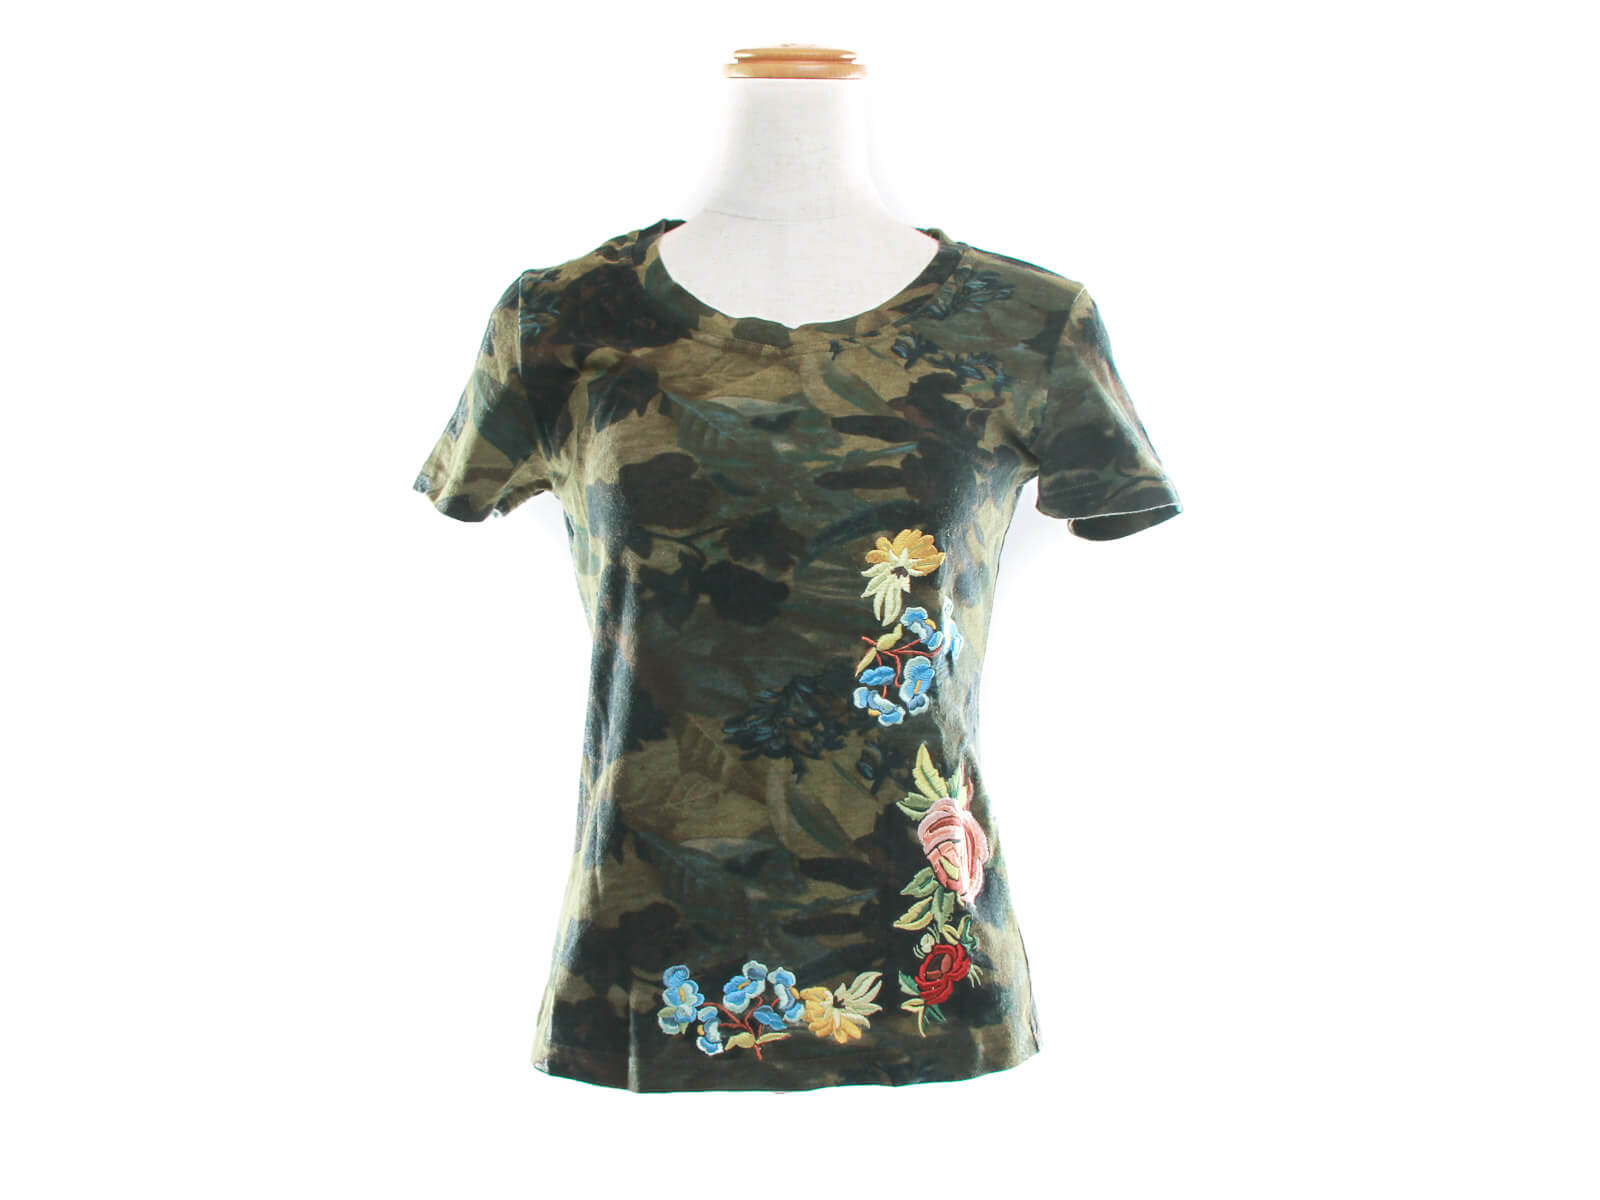 Authentic vintage Christian Dior camo embroidered T shirt